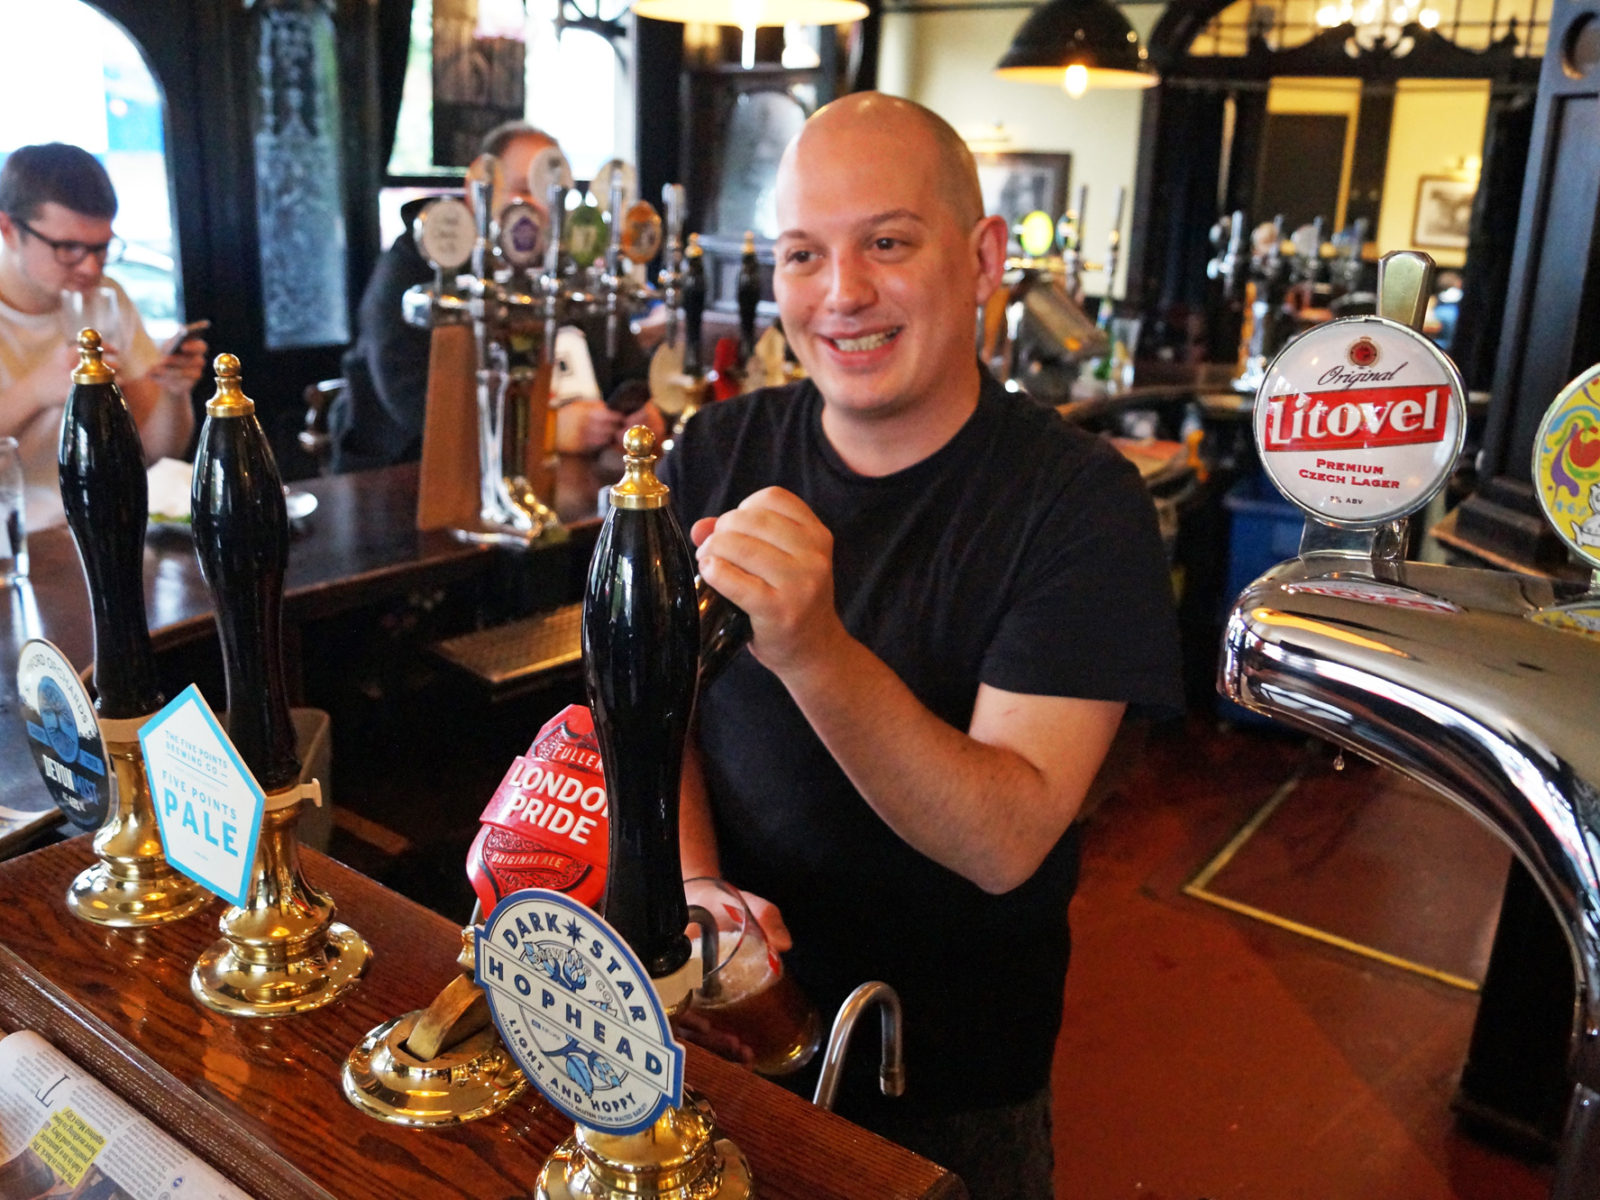 Dan pouring a pint at the Shaftesbury Tavern